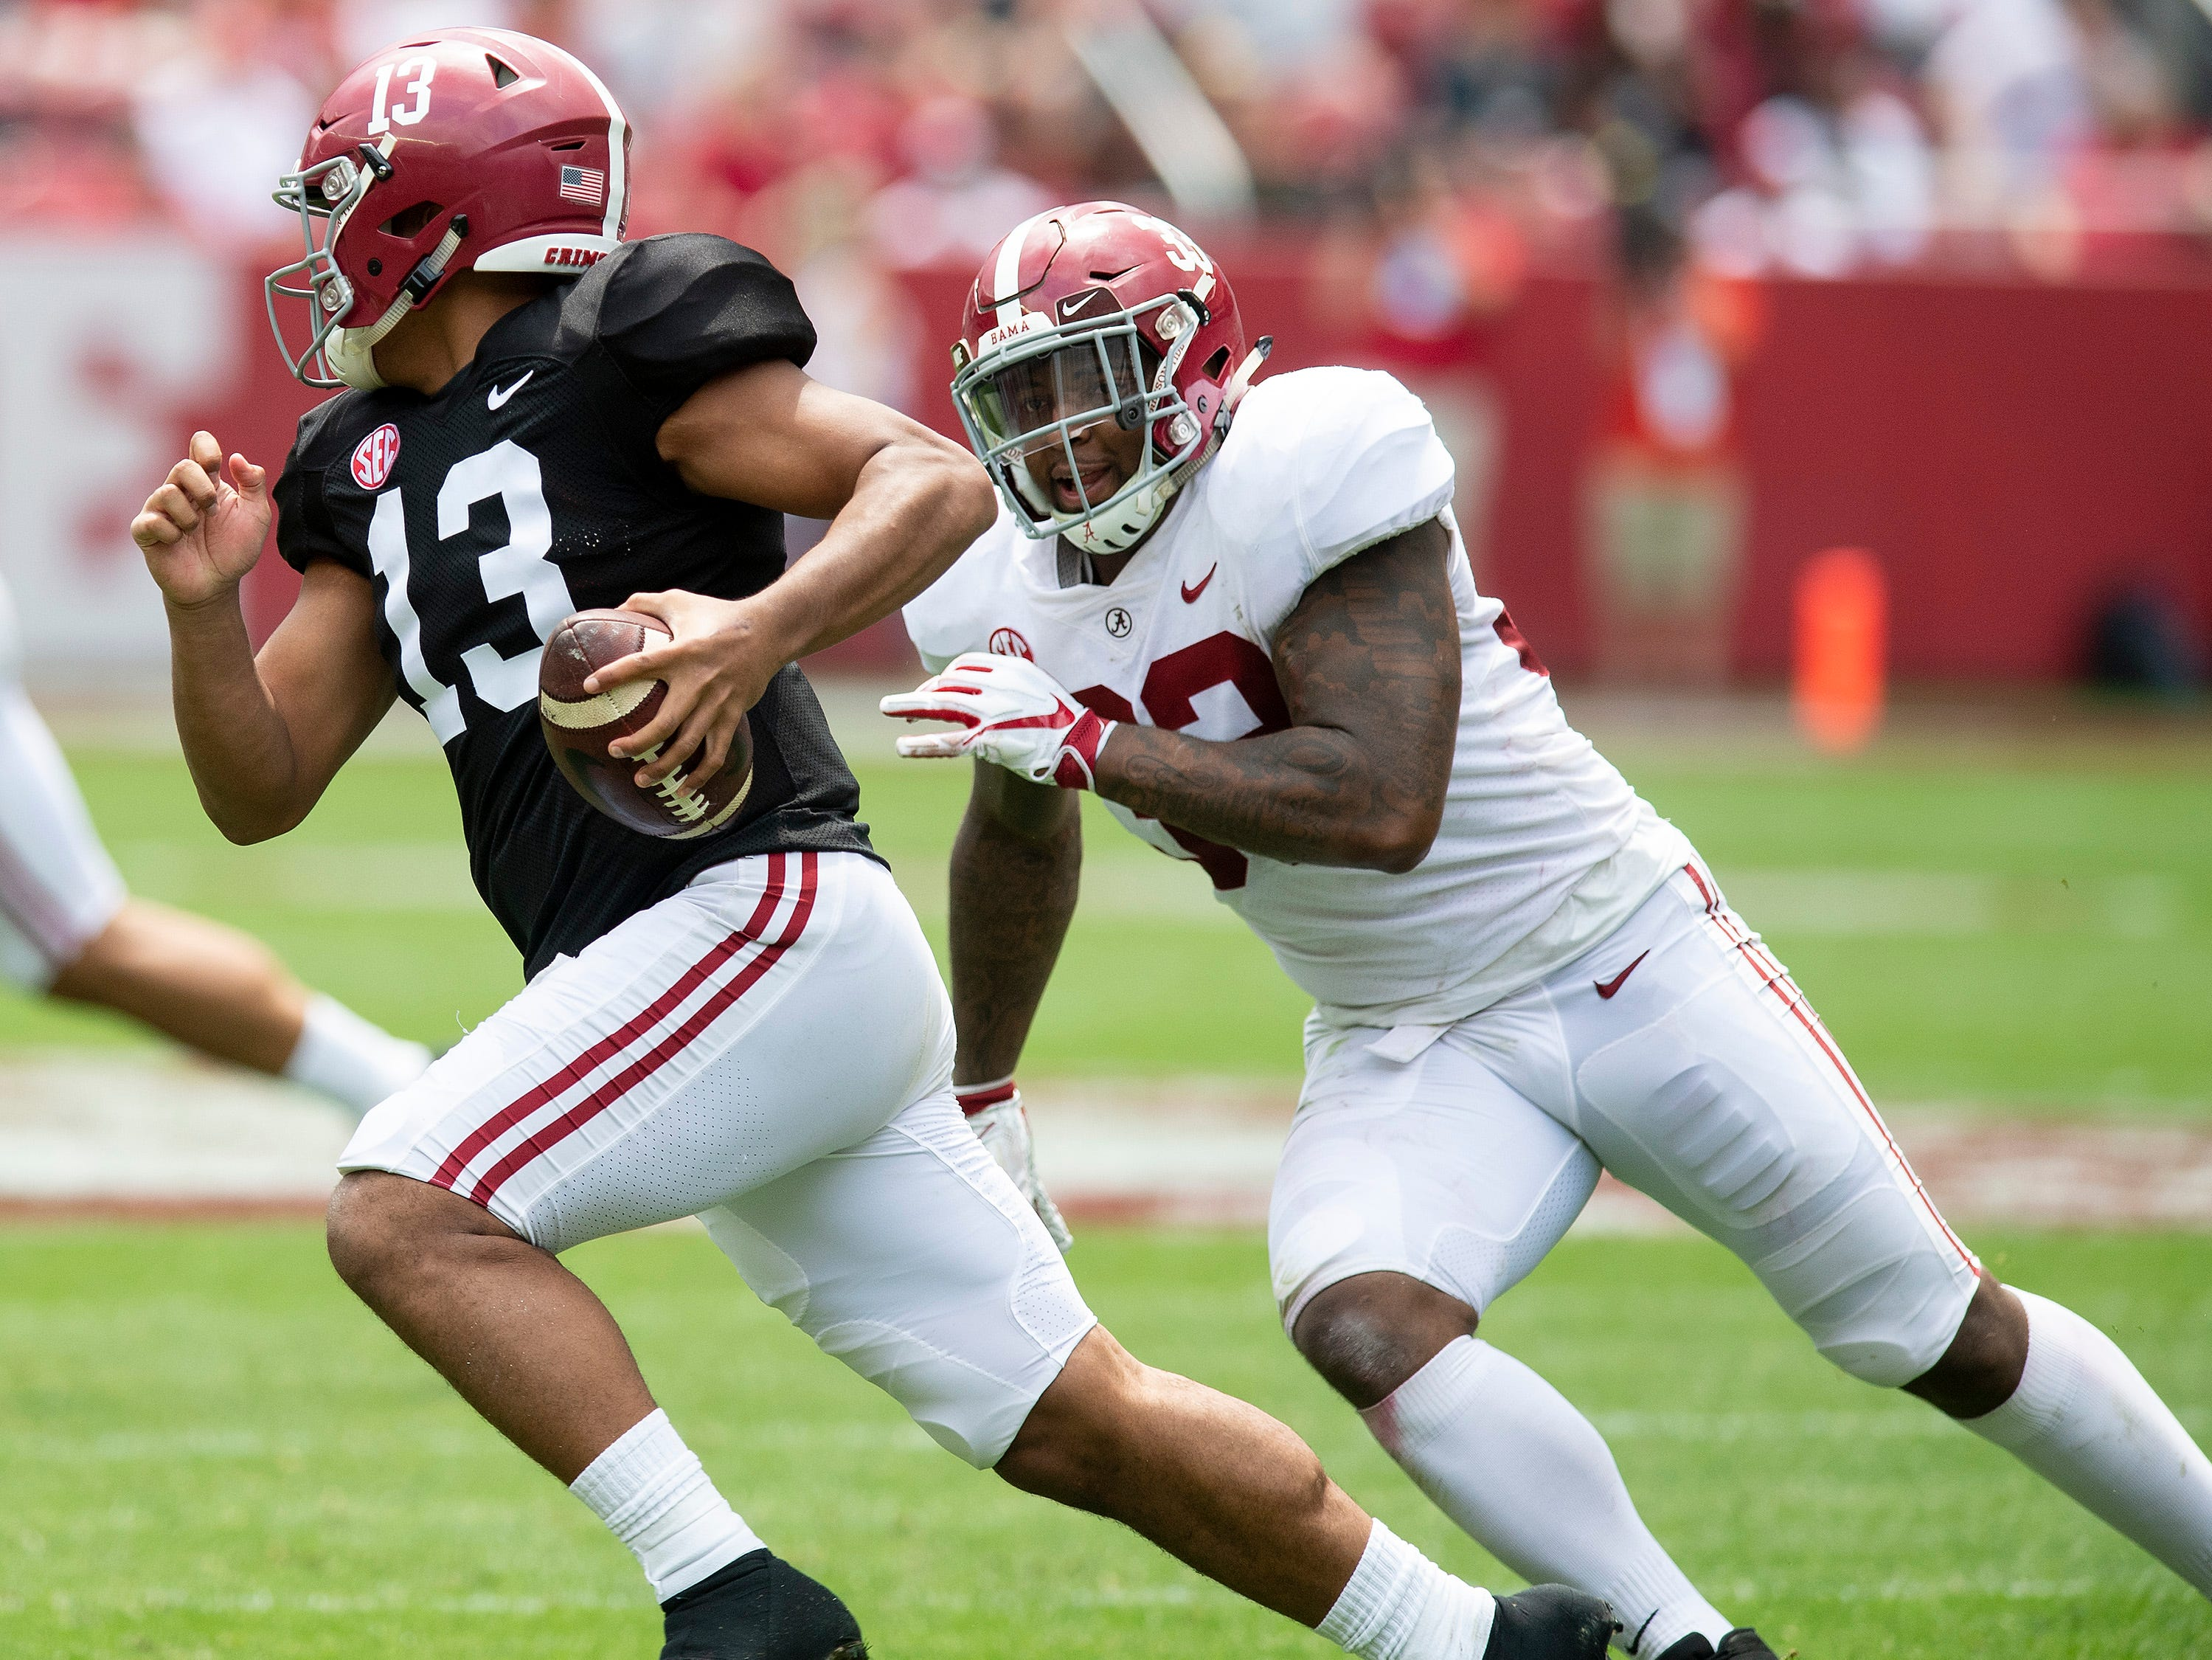 Linebacker Anfernee Jennings (33) chases quarterback Tua Tagovailoa (13) during first half action in the Alabama A-Day spring football scrimmage game at Bryant Denny Stadium in Tuscaloosa, Ala., on Saturday April 13, 2019.